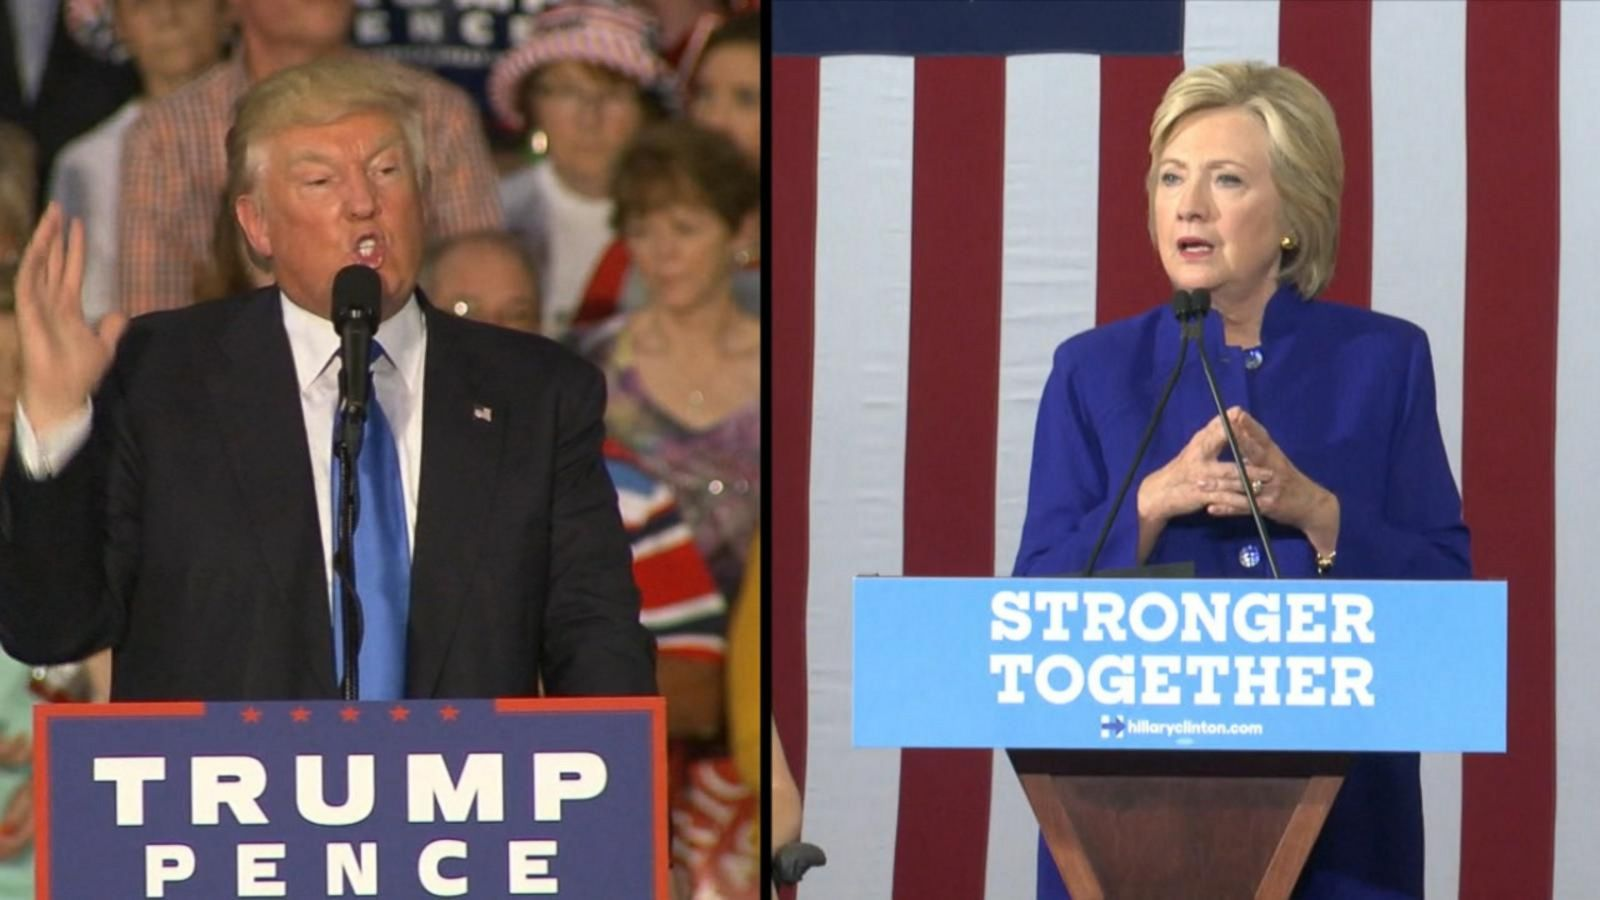 VIDEO: What to Watch at 1st Hillary Clinton, Donald Trump Debate